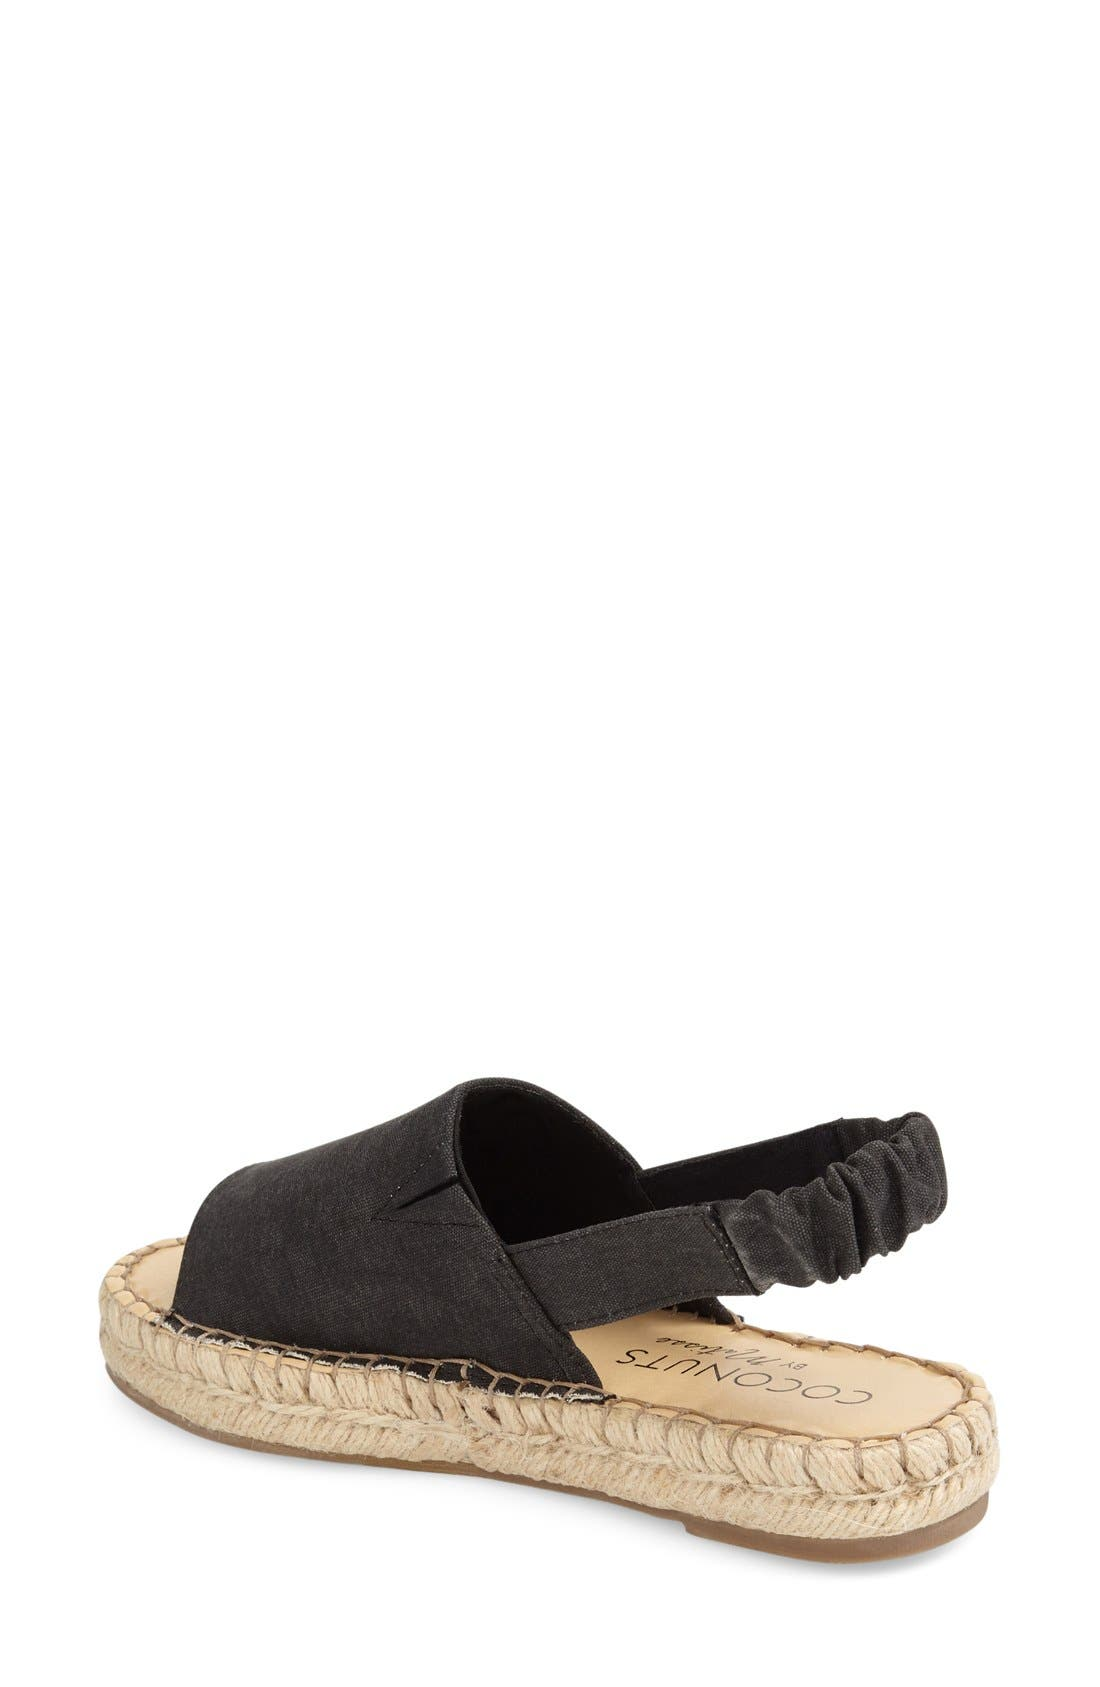 Alternate Image 2  - Coconuts by Matisse 'Darling' Espadrille Sandal (Women)